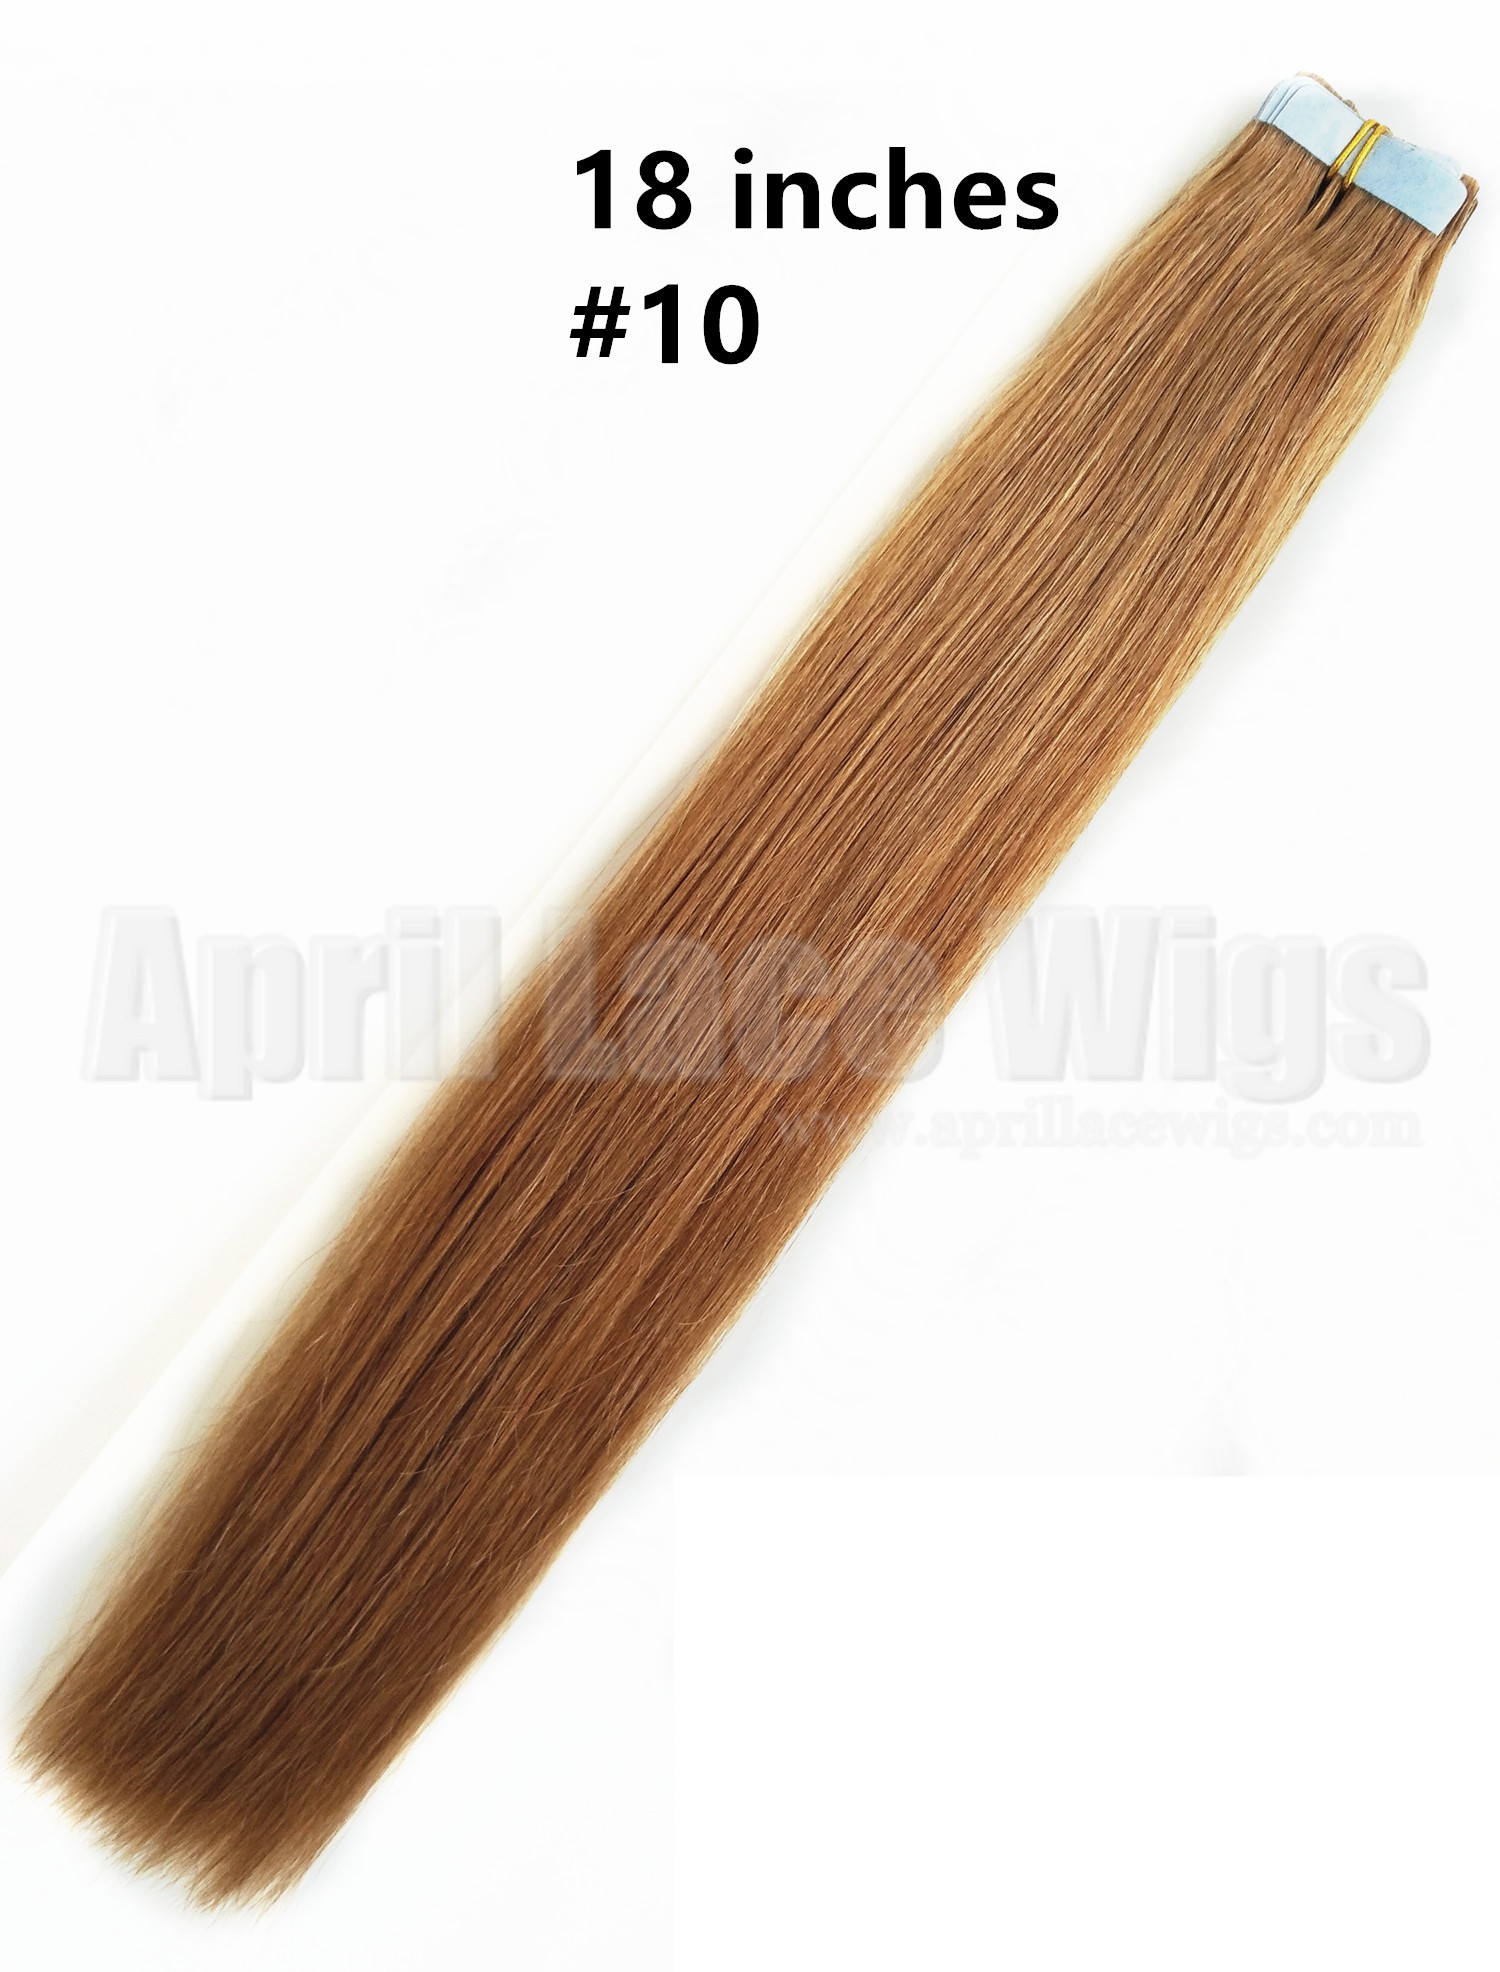 virgin hair natural straight PU thin skin hair weaving wefts